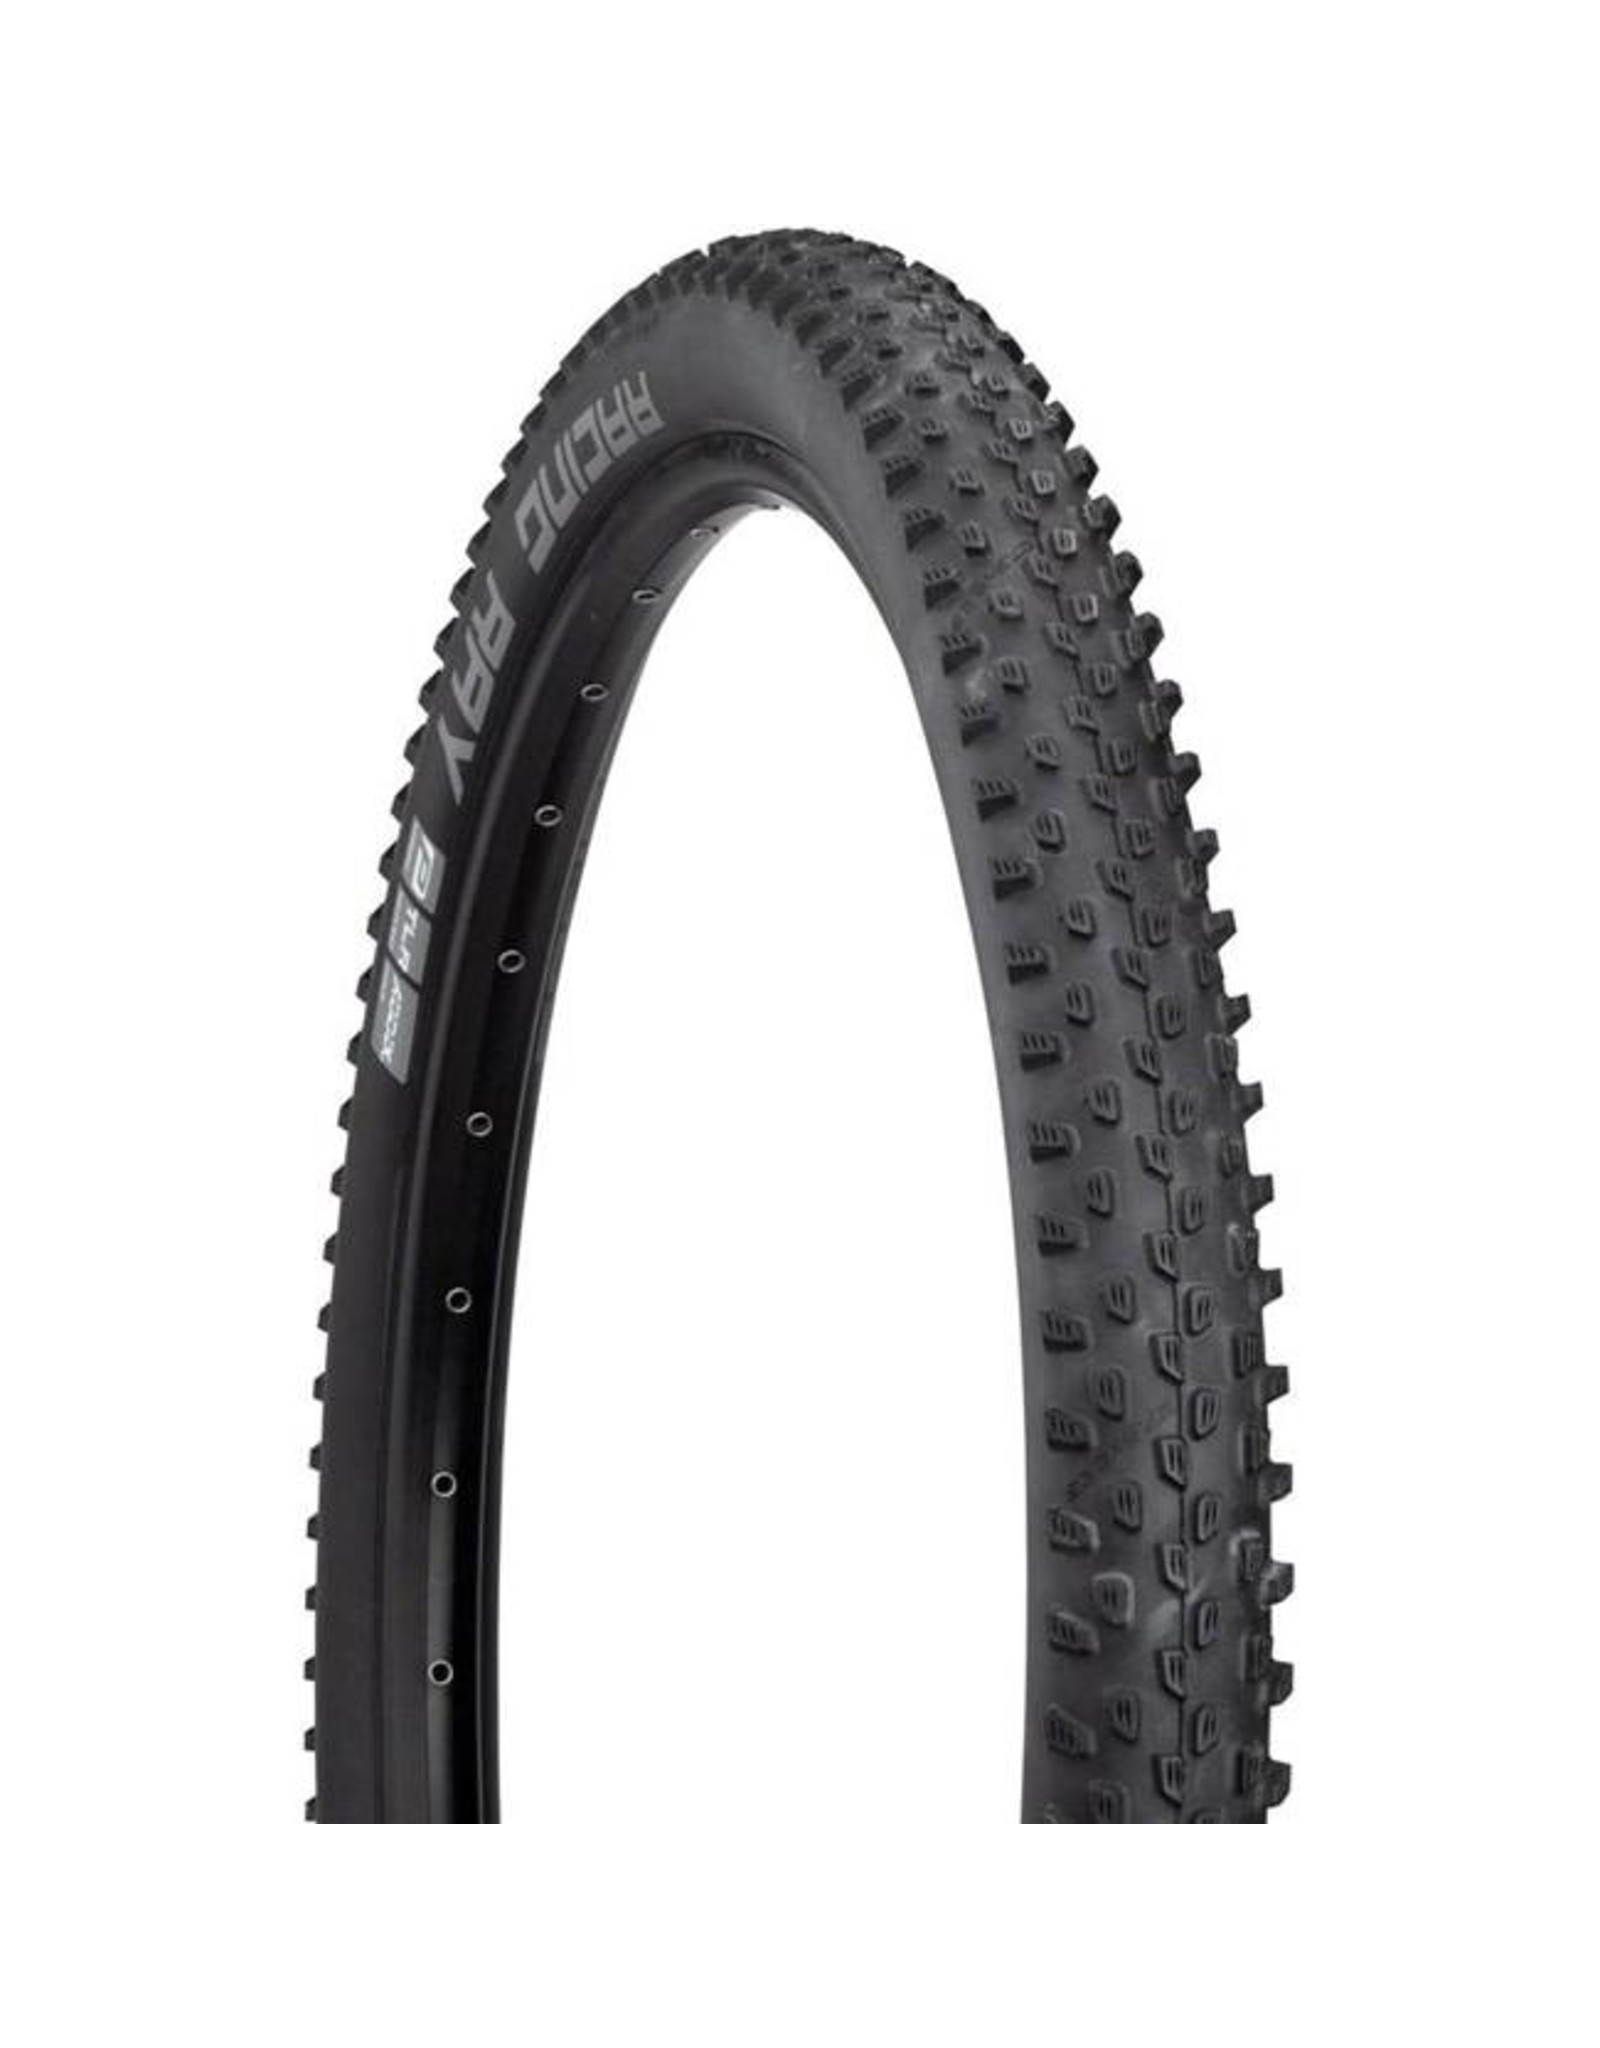 "Schwalbe Schwalbe Racing Ray Tire: 27.5 x 2.25"", Folding Bead, Performance Line, Addix Performance Compound, TwinSkin, Tubeless Ready, Black"